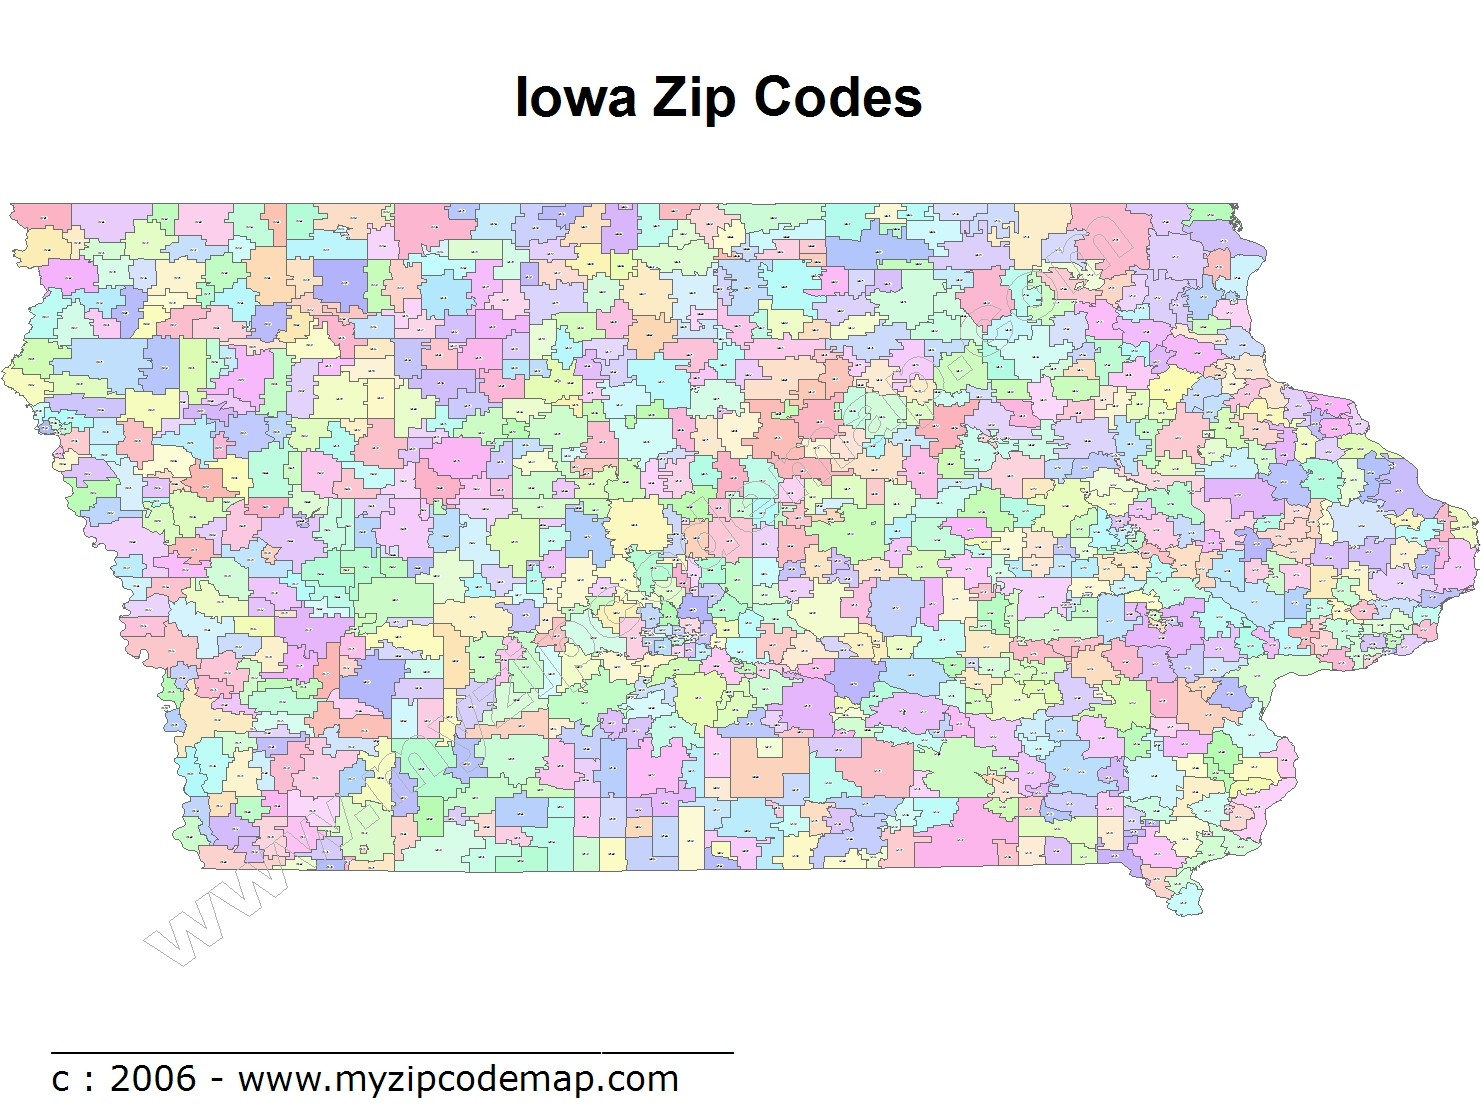 Iowa (IA) Zip Code Map